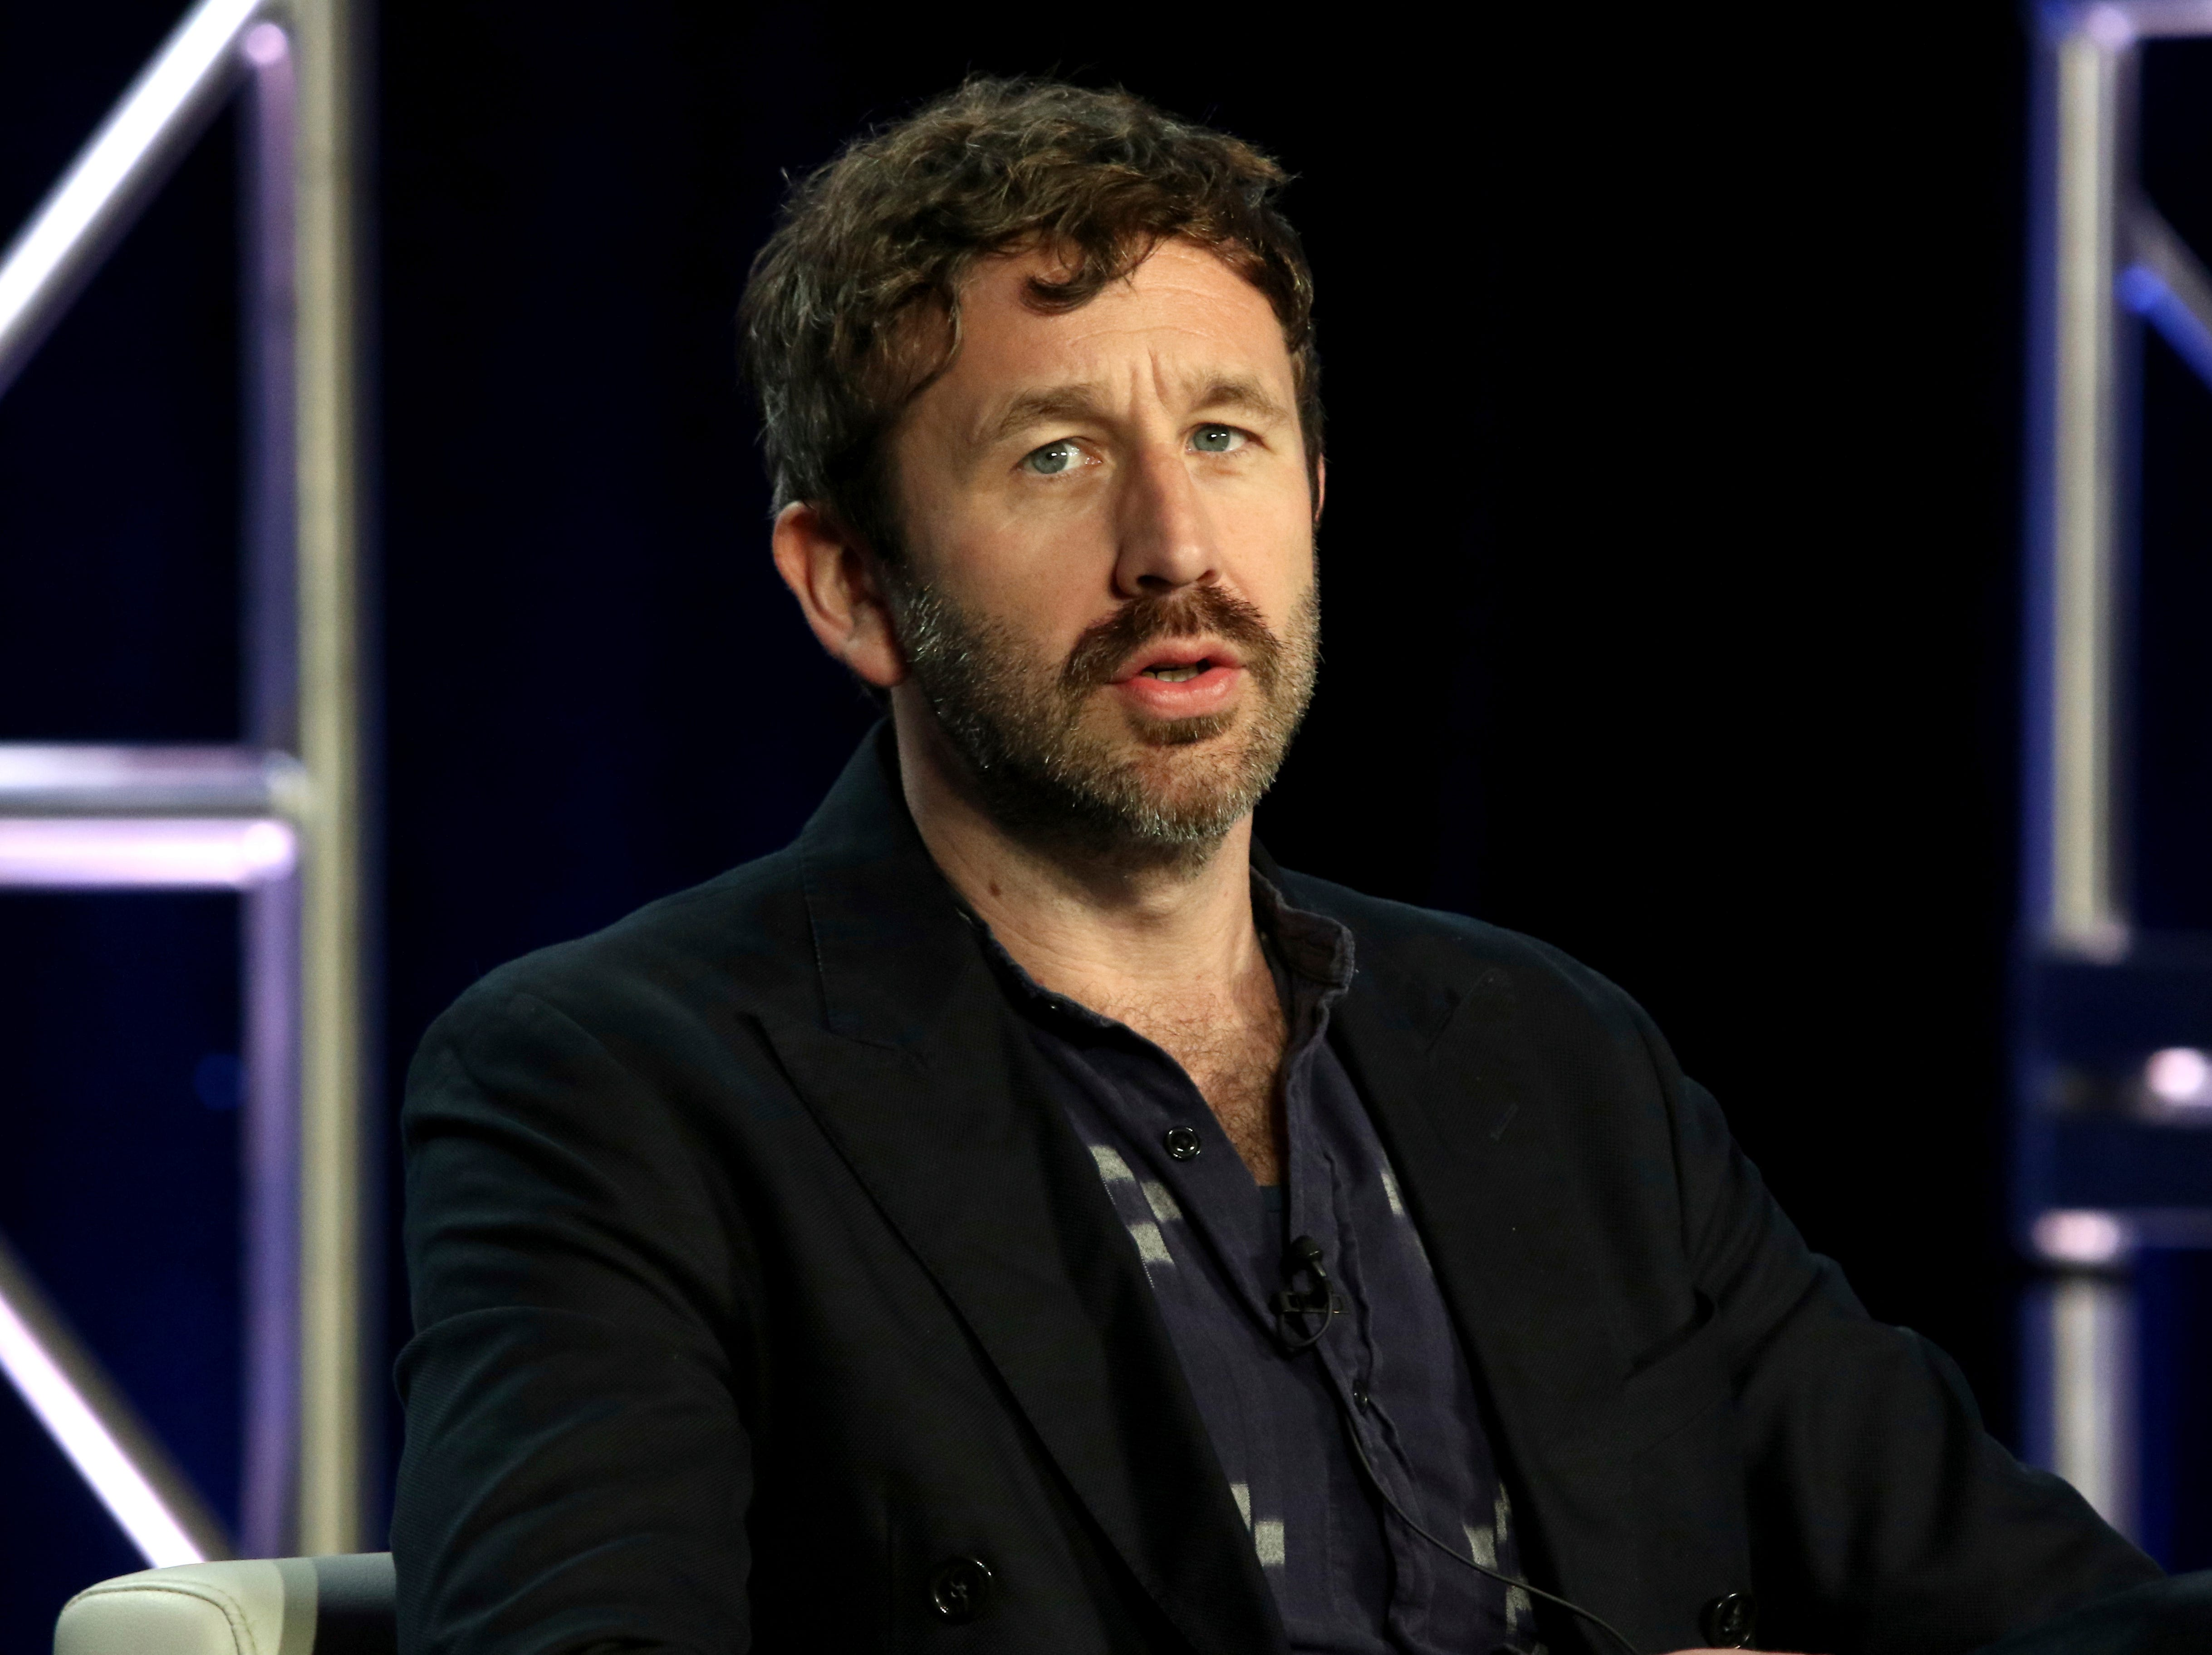 """Chris O'Dowd discusses """"State of the Union"""" from SundanceTV's presentation at TCA."""